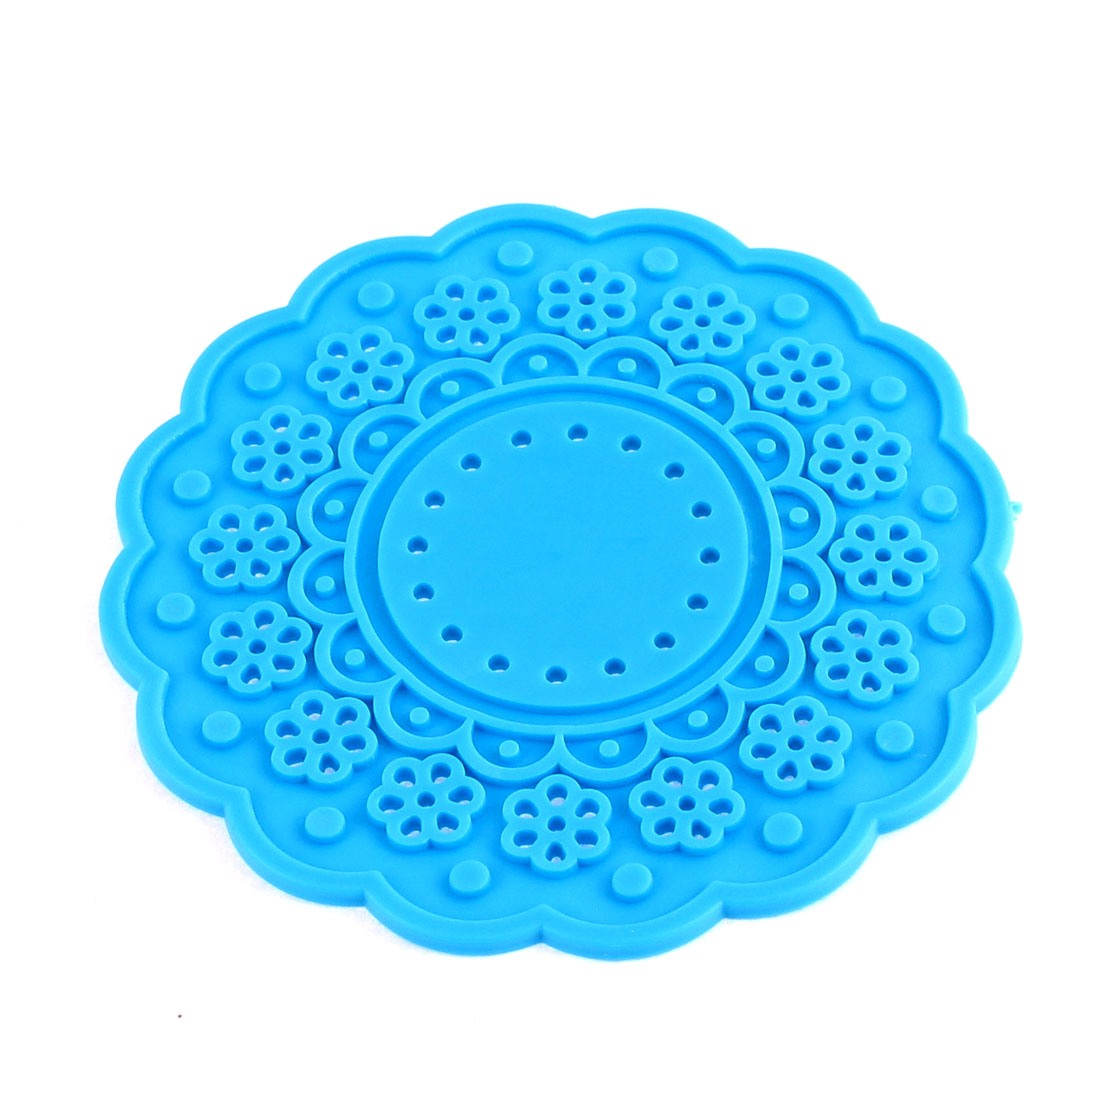 Blue Silicone Lace Doily Coasters Drink Tea Cup Mat 10cm Dia